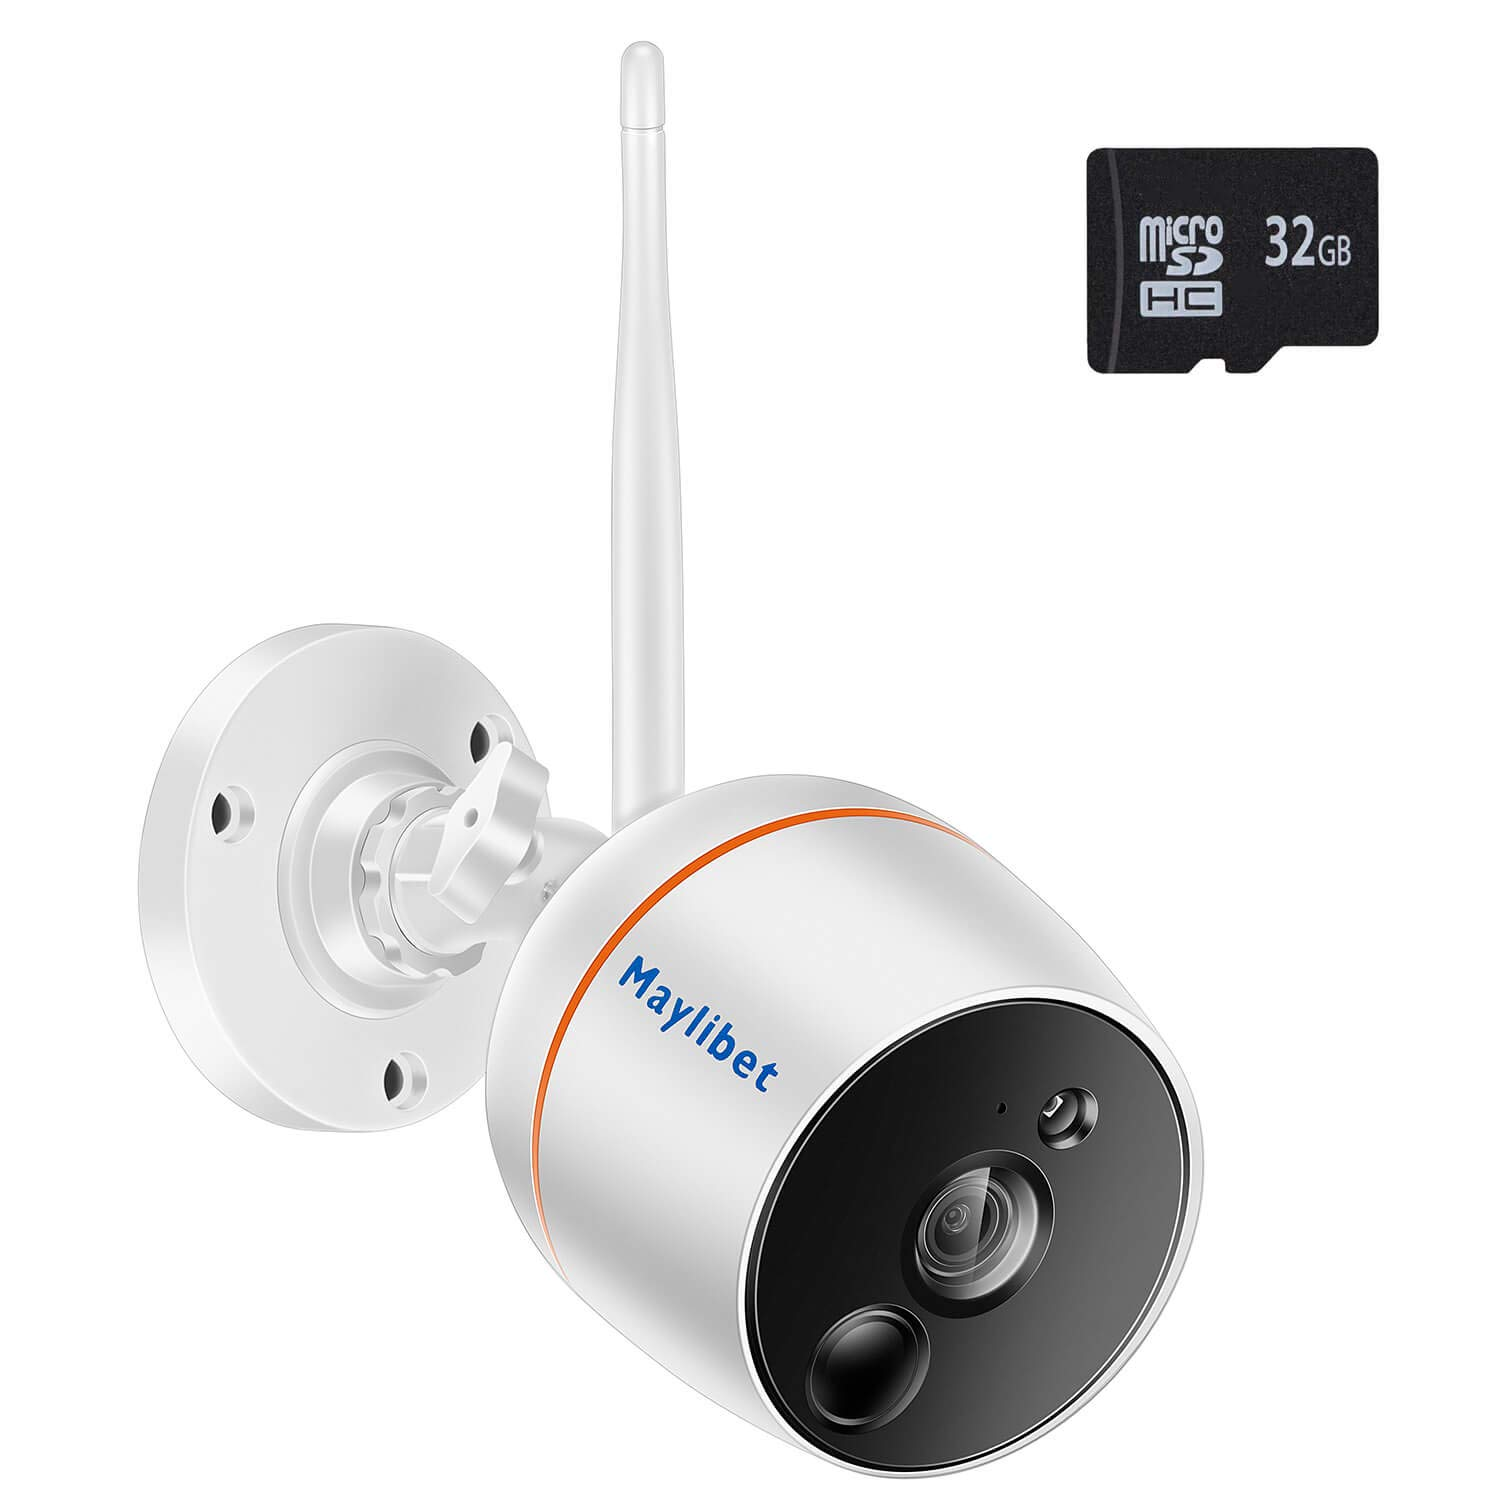 Wireless Security Camera Surveillance System with Motion Detection and Audio for Home Outdoor Indoor, Smart 2.4GHz WiFi 2MP Bullet IP Camera with iOS/Android APP, Pre-Installed 32GB SD Card Record